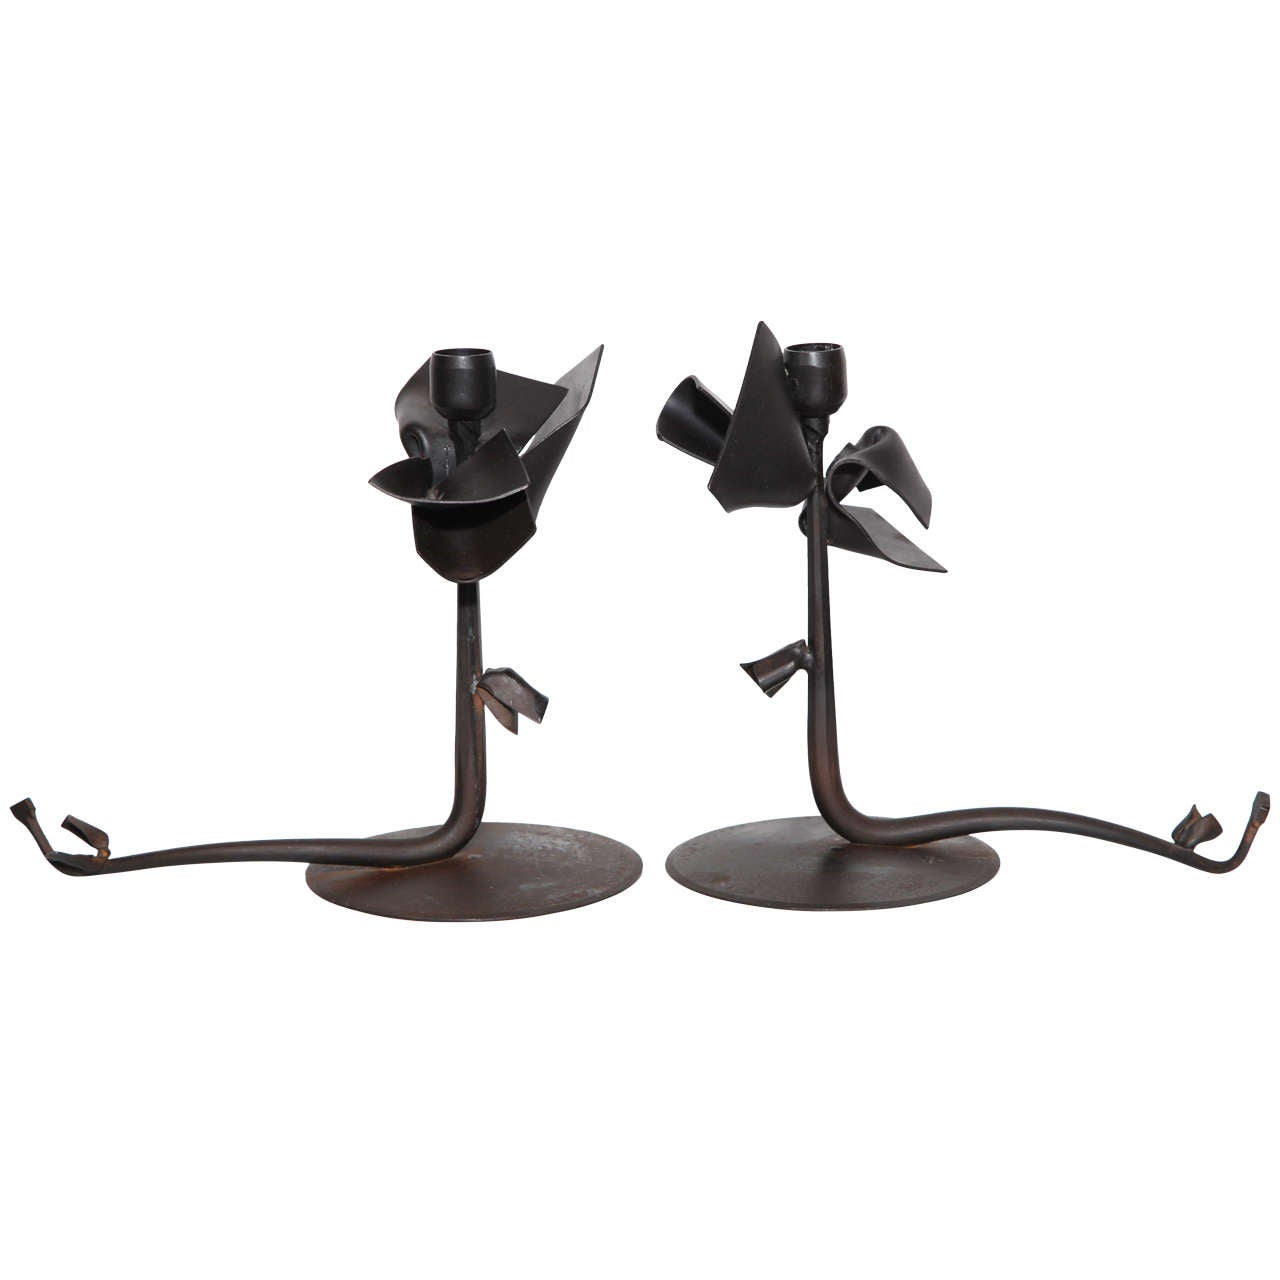 1993 Pair of Albert Paley Forged Iron Botanical Candlesticks